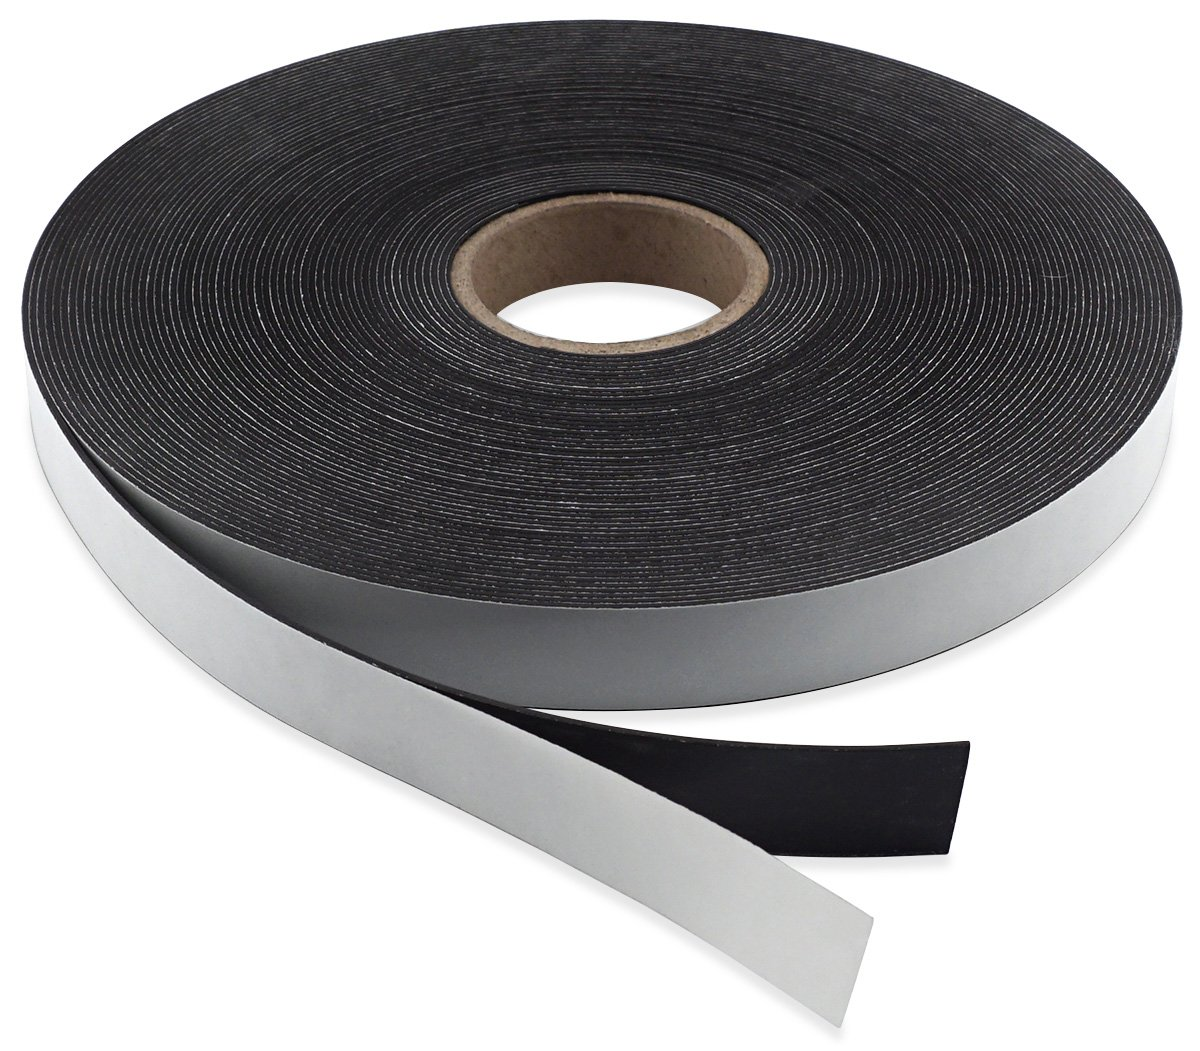 Master Magnetics Flexible Magnet Strip with Adhesive Back , 1/16'' Thick, 1'' Wide, 50 Feet Score-Cut Every 4'' Length with 147 - 1'' x 4'' Pieces (1 Roll)